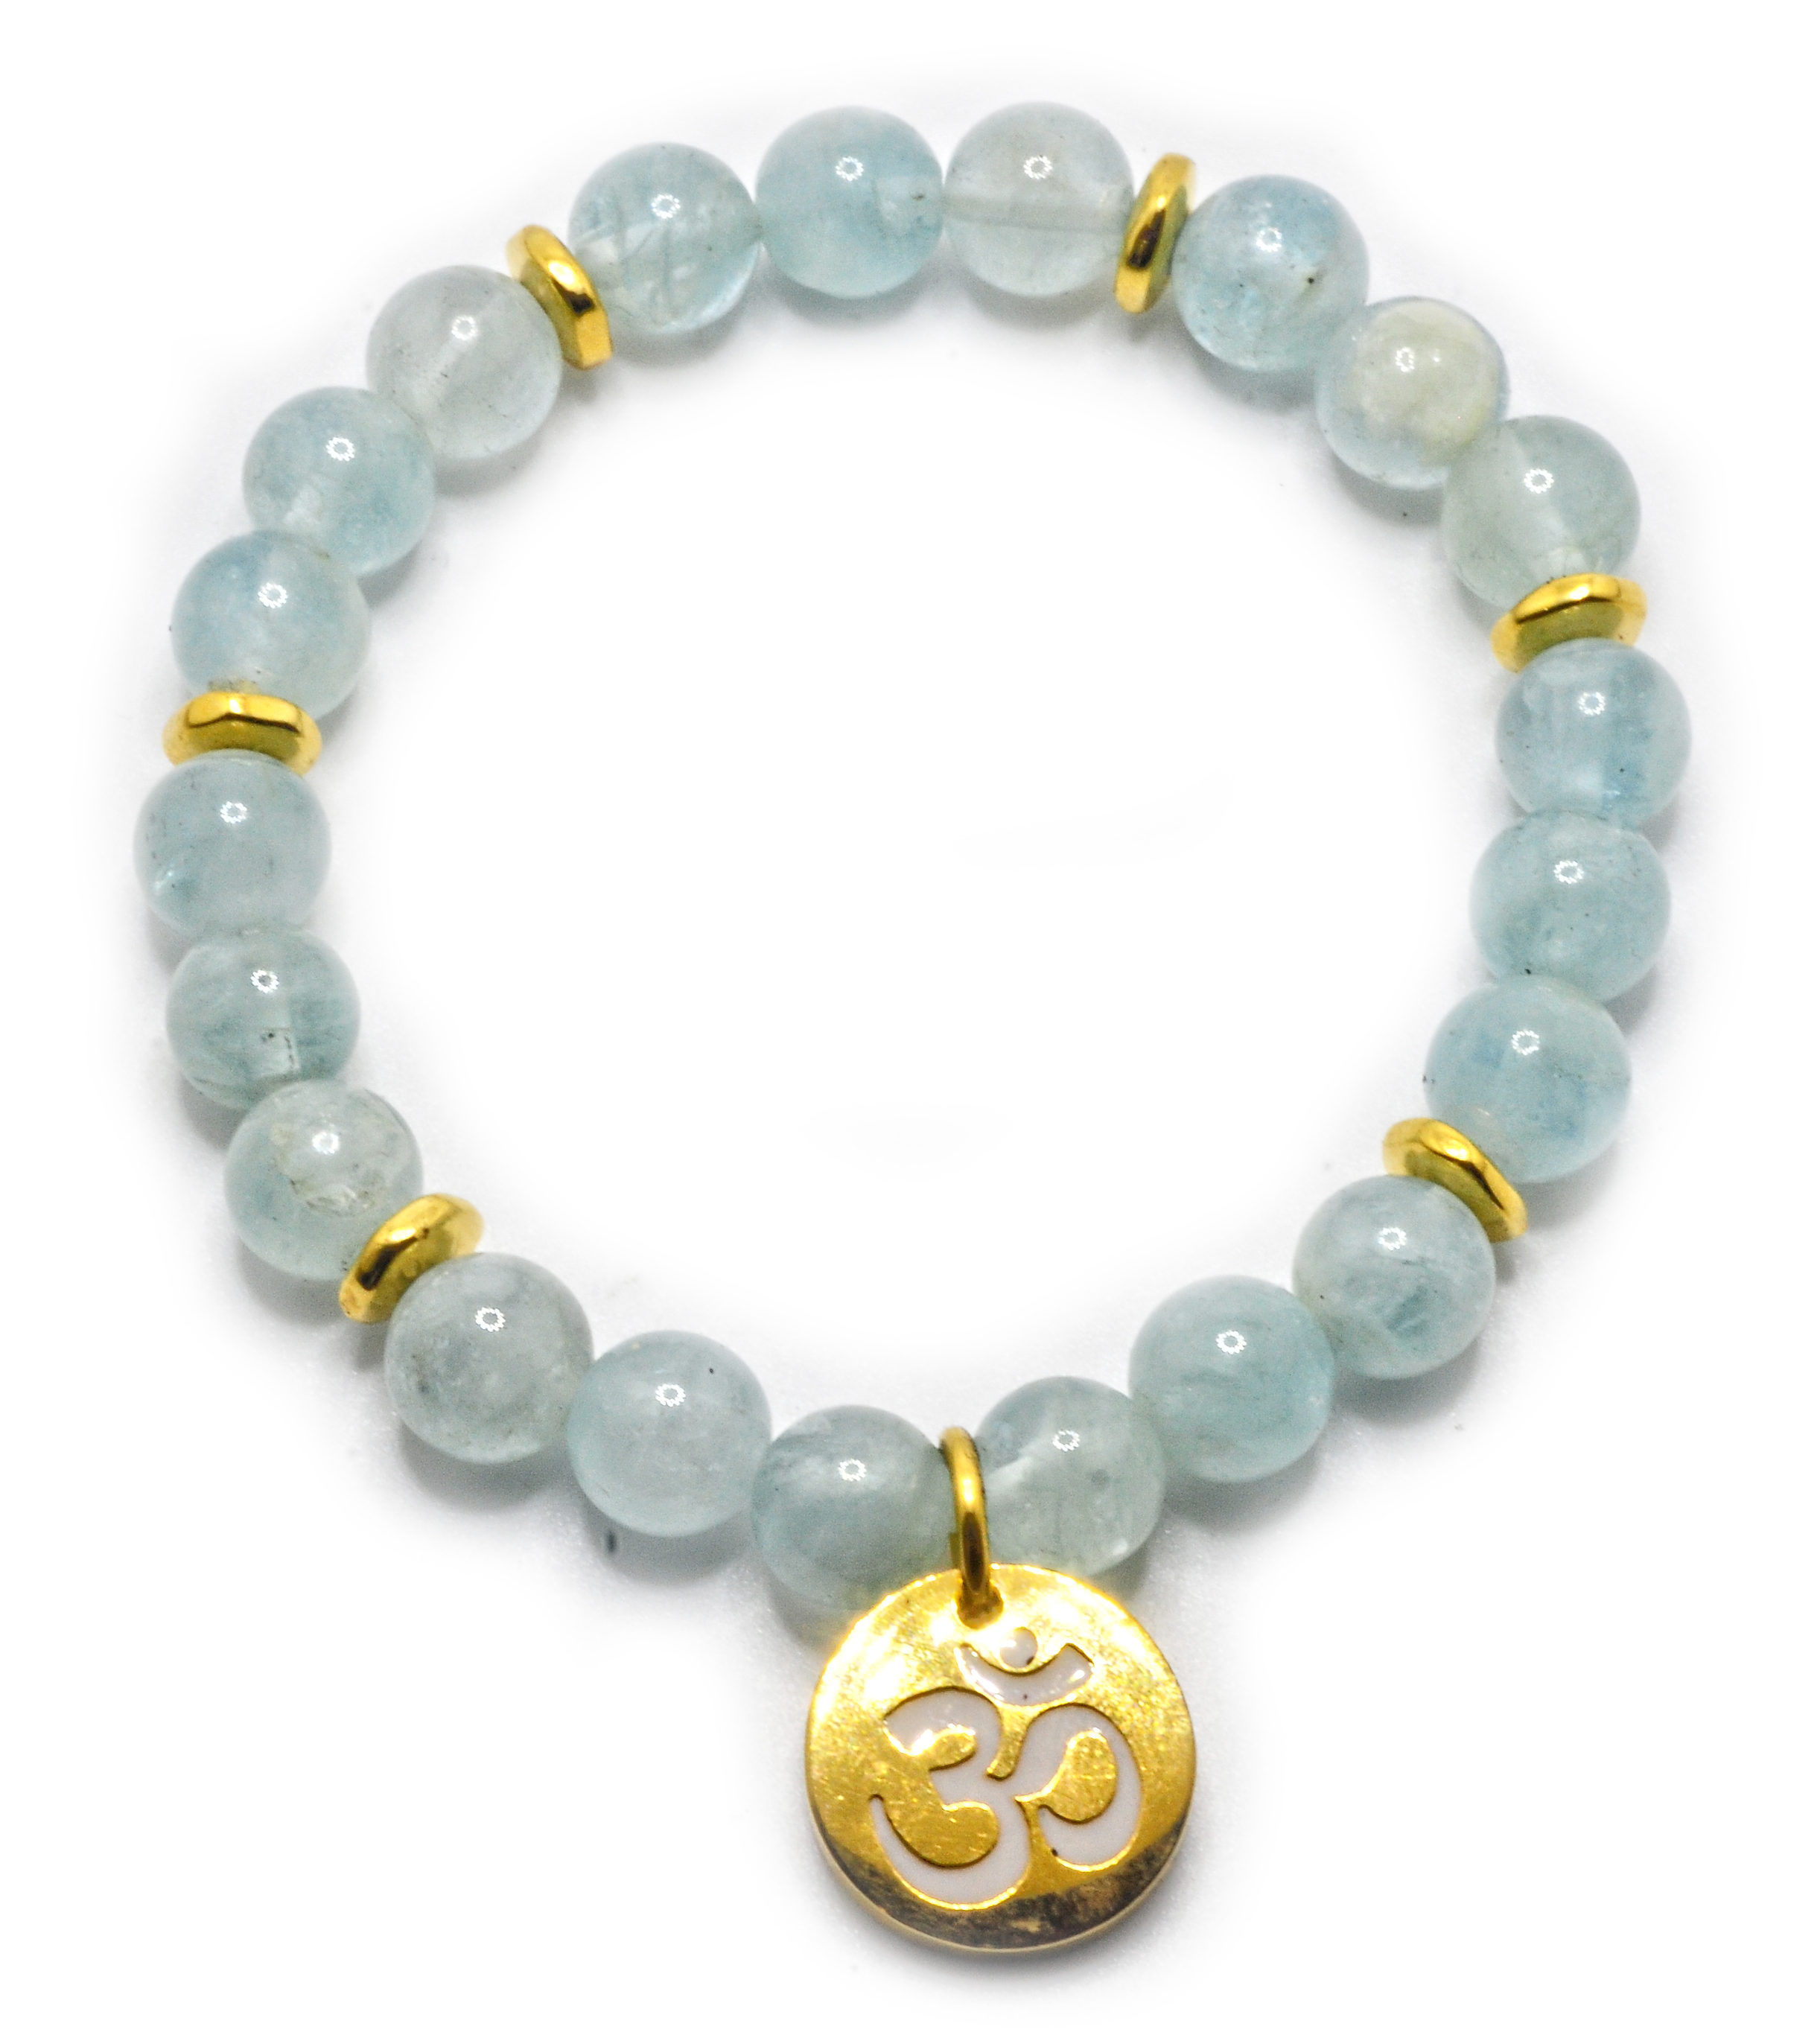 product the round aquamarine bracelet awaken special peace